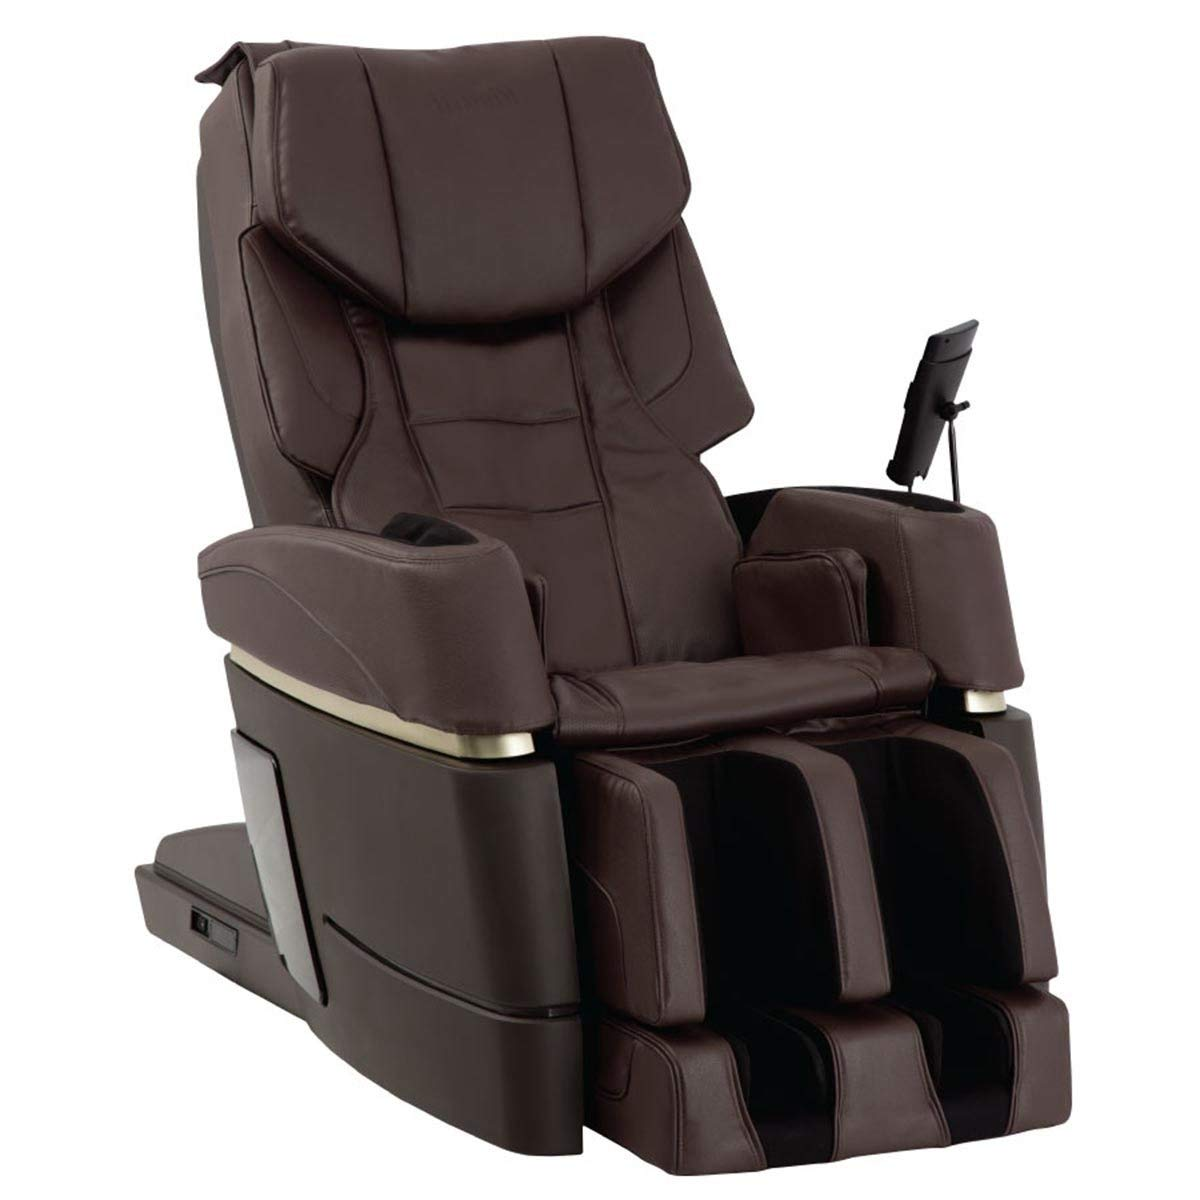 Top 10 Best Japanese Massage Chair Reviews in 2021 2